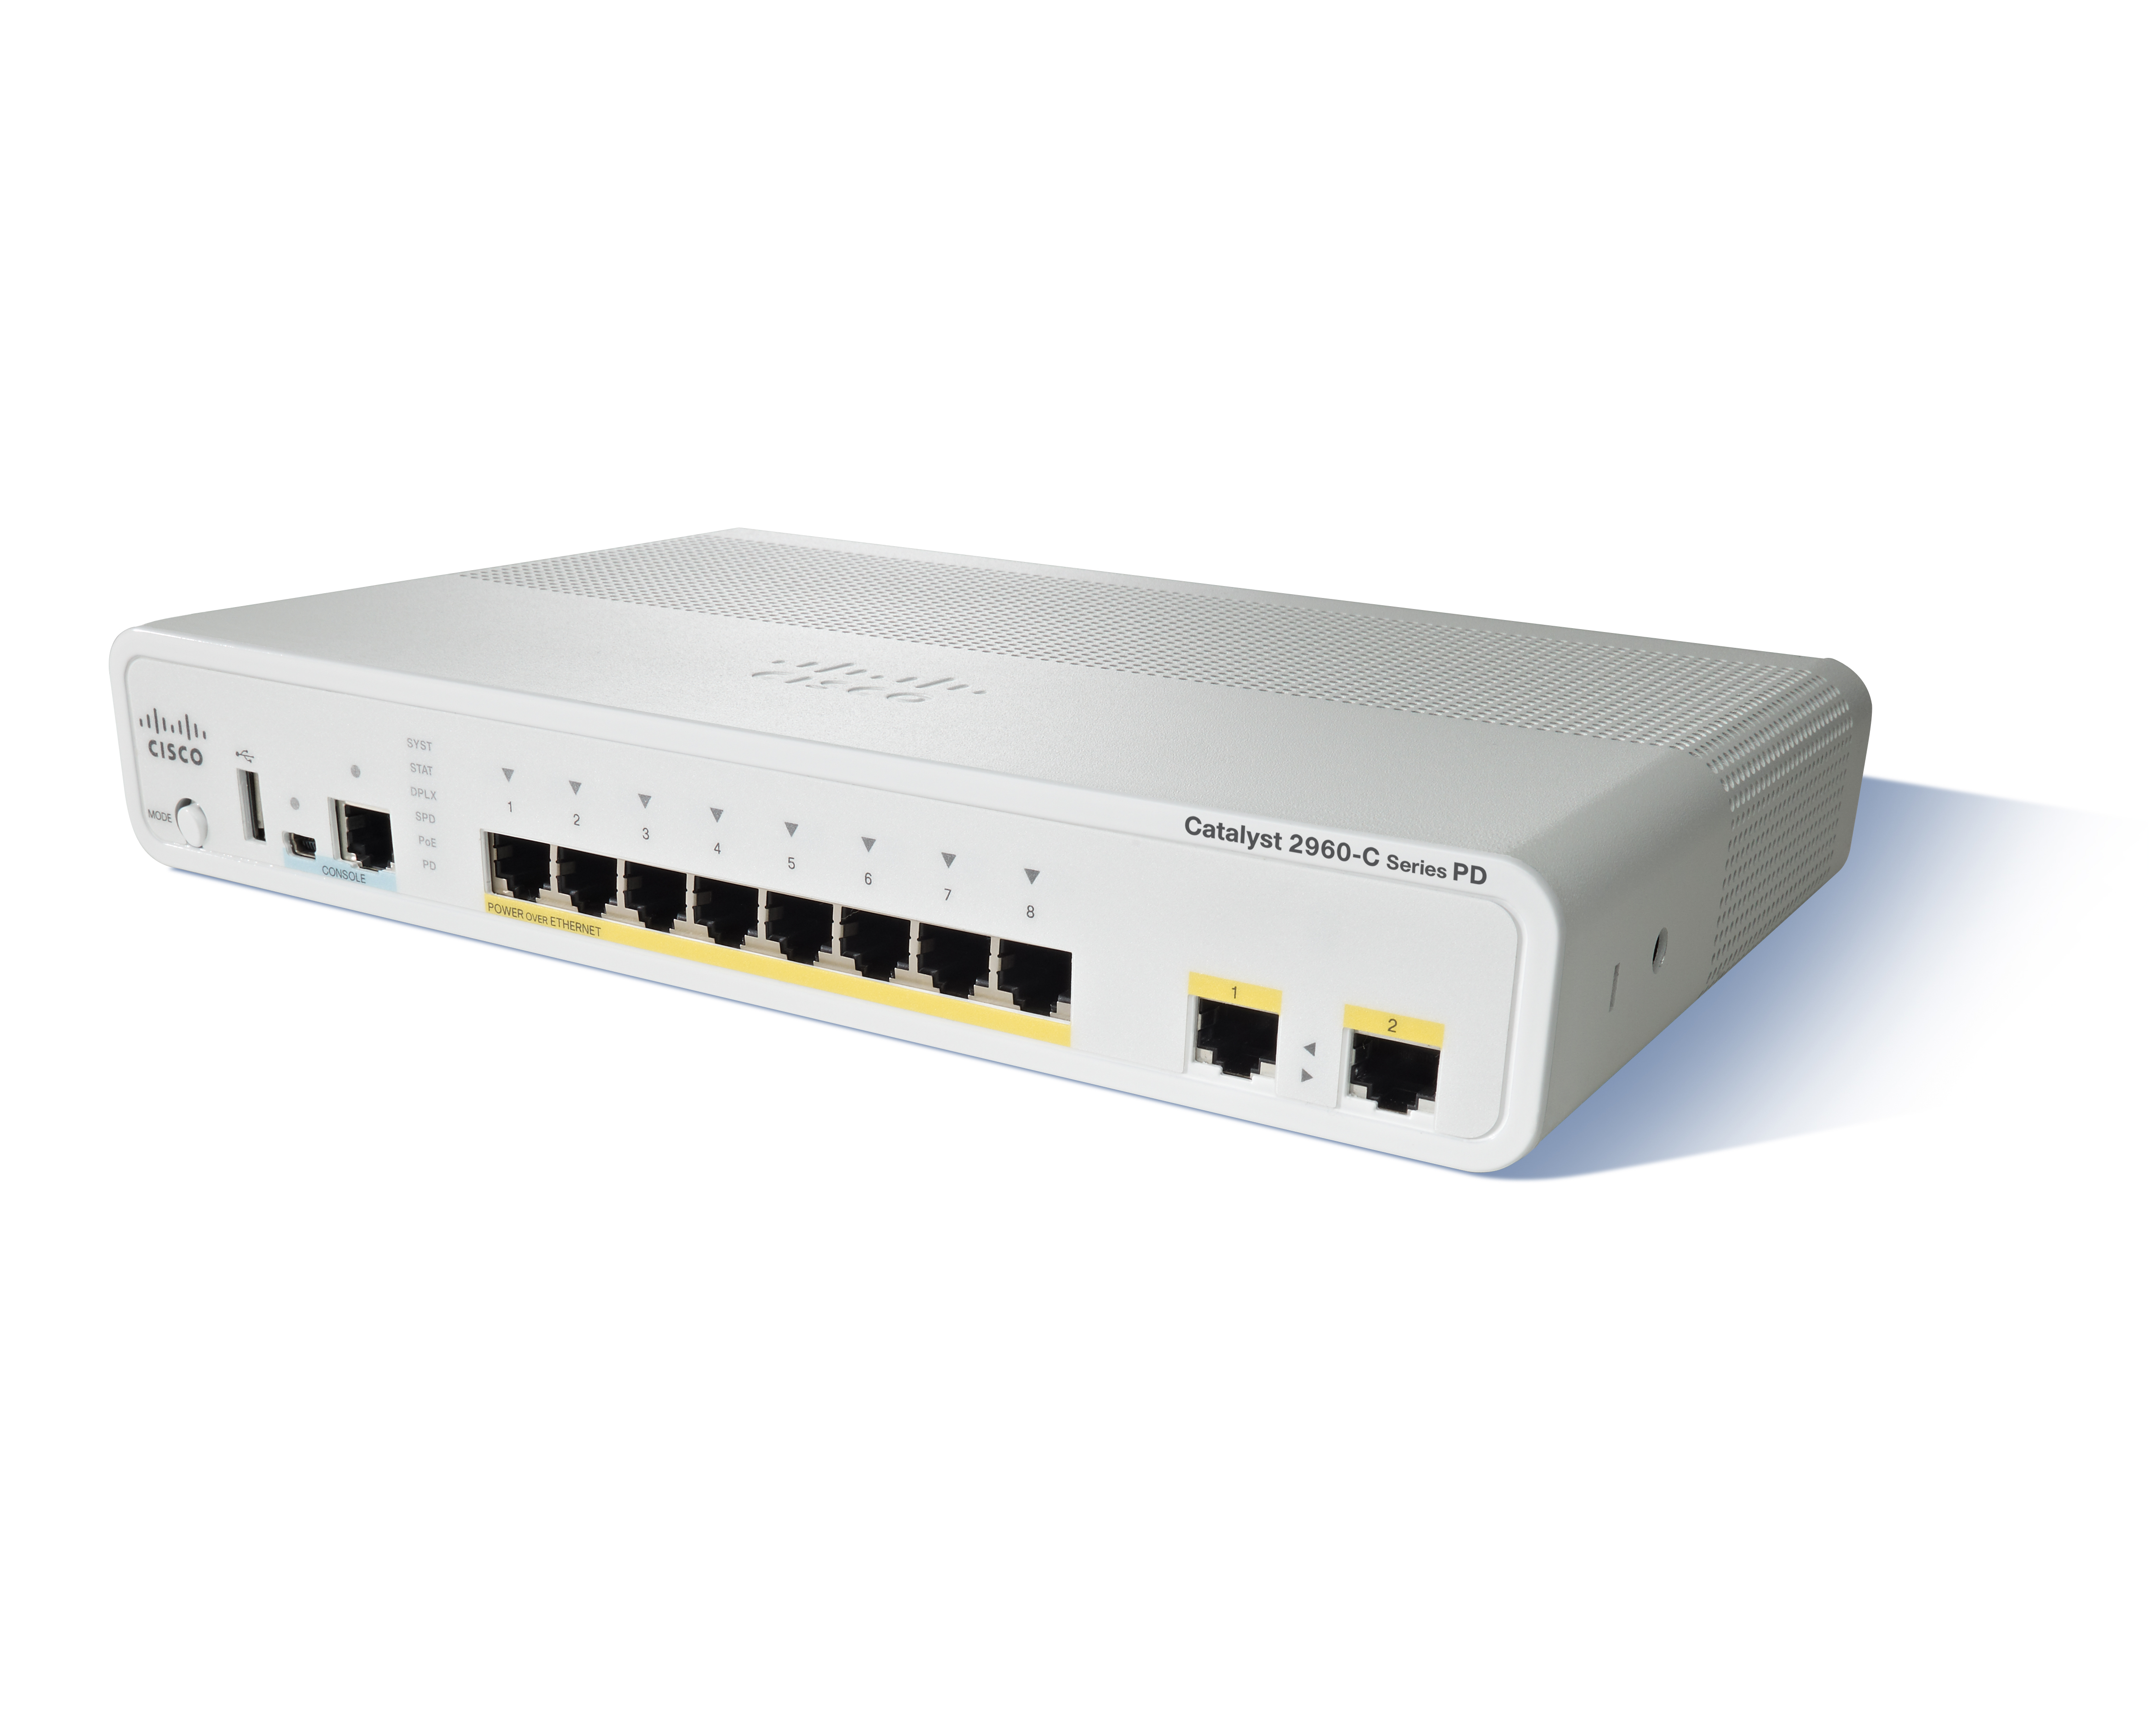 Cisco Evolves Catalyst Switch Family To Deliver Highly Secure Cost Internet Wiring Closet Extremely Compact The Catalystr 2960 C Is Roughly Half Size Of An Xbox Console